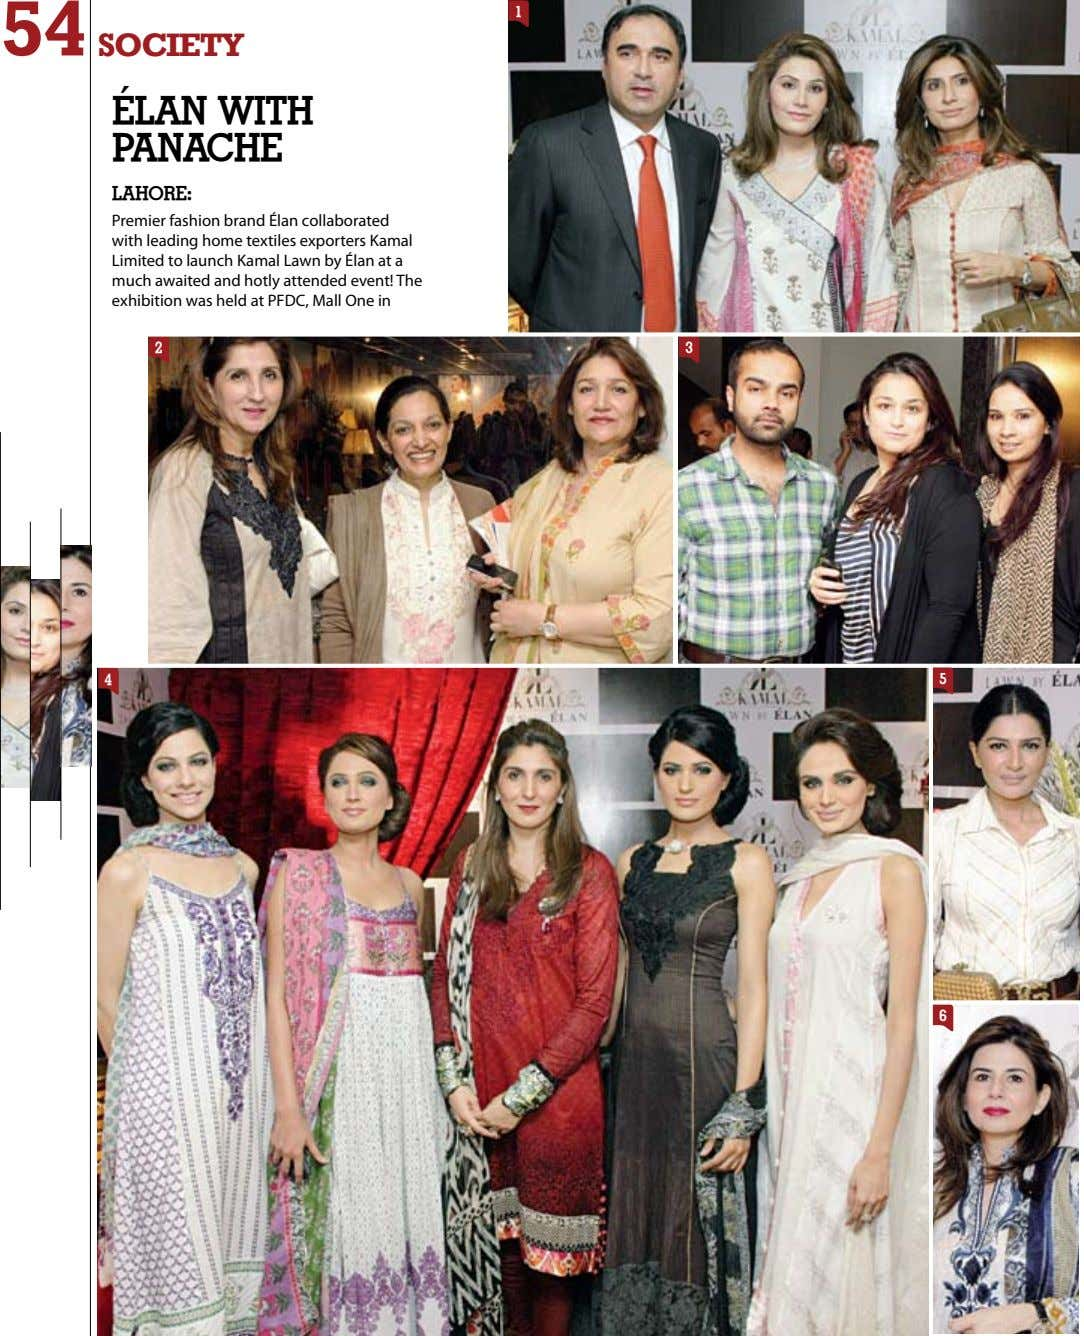 54 1 society Élan with panache lahORe: Premier fashion brand Élan collaborated with leading home